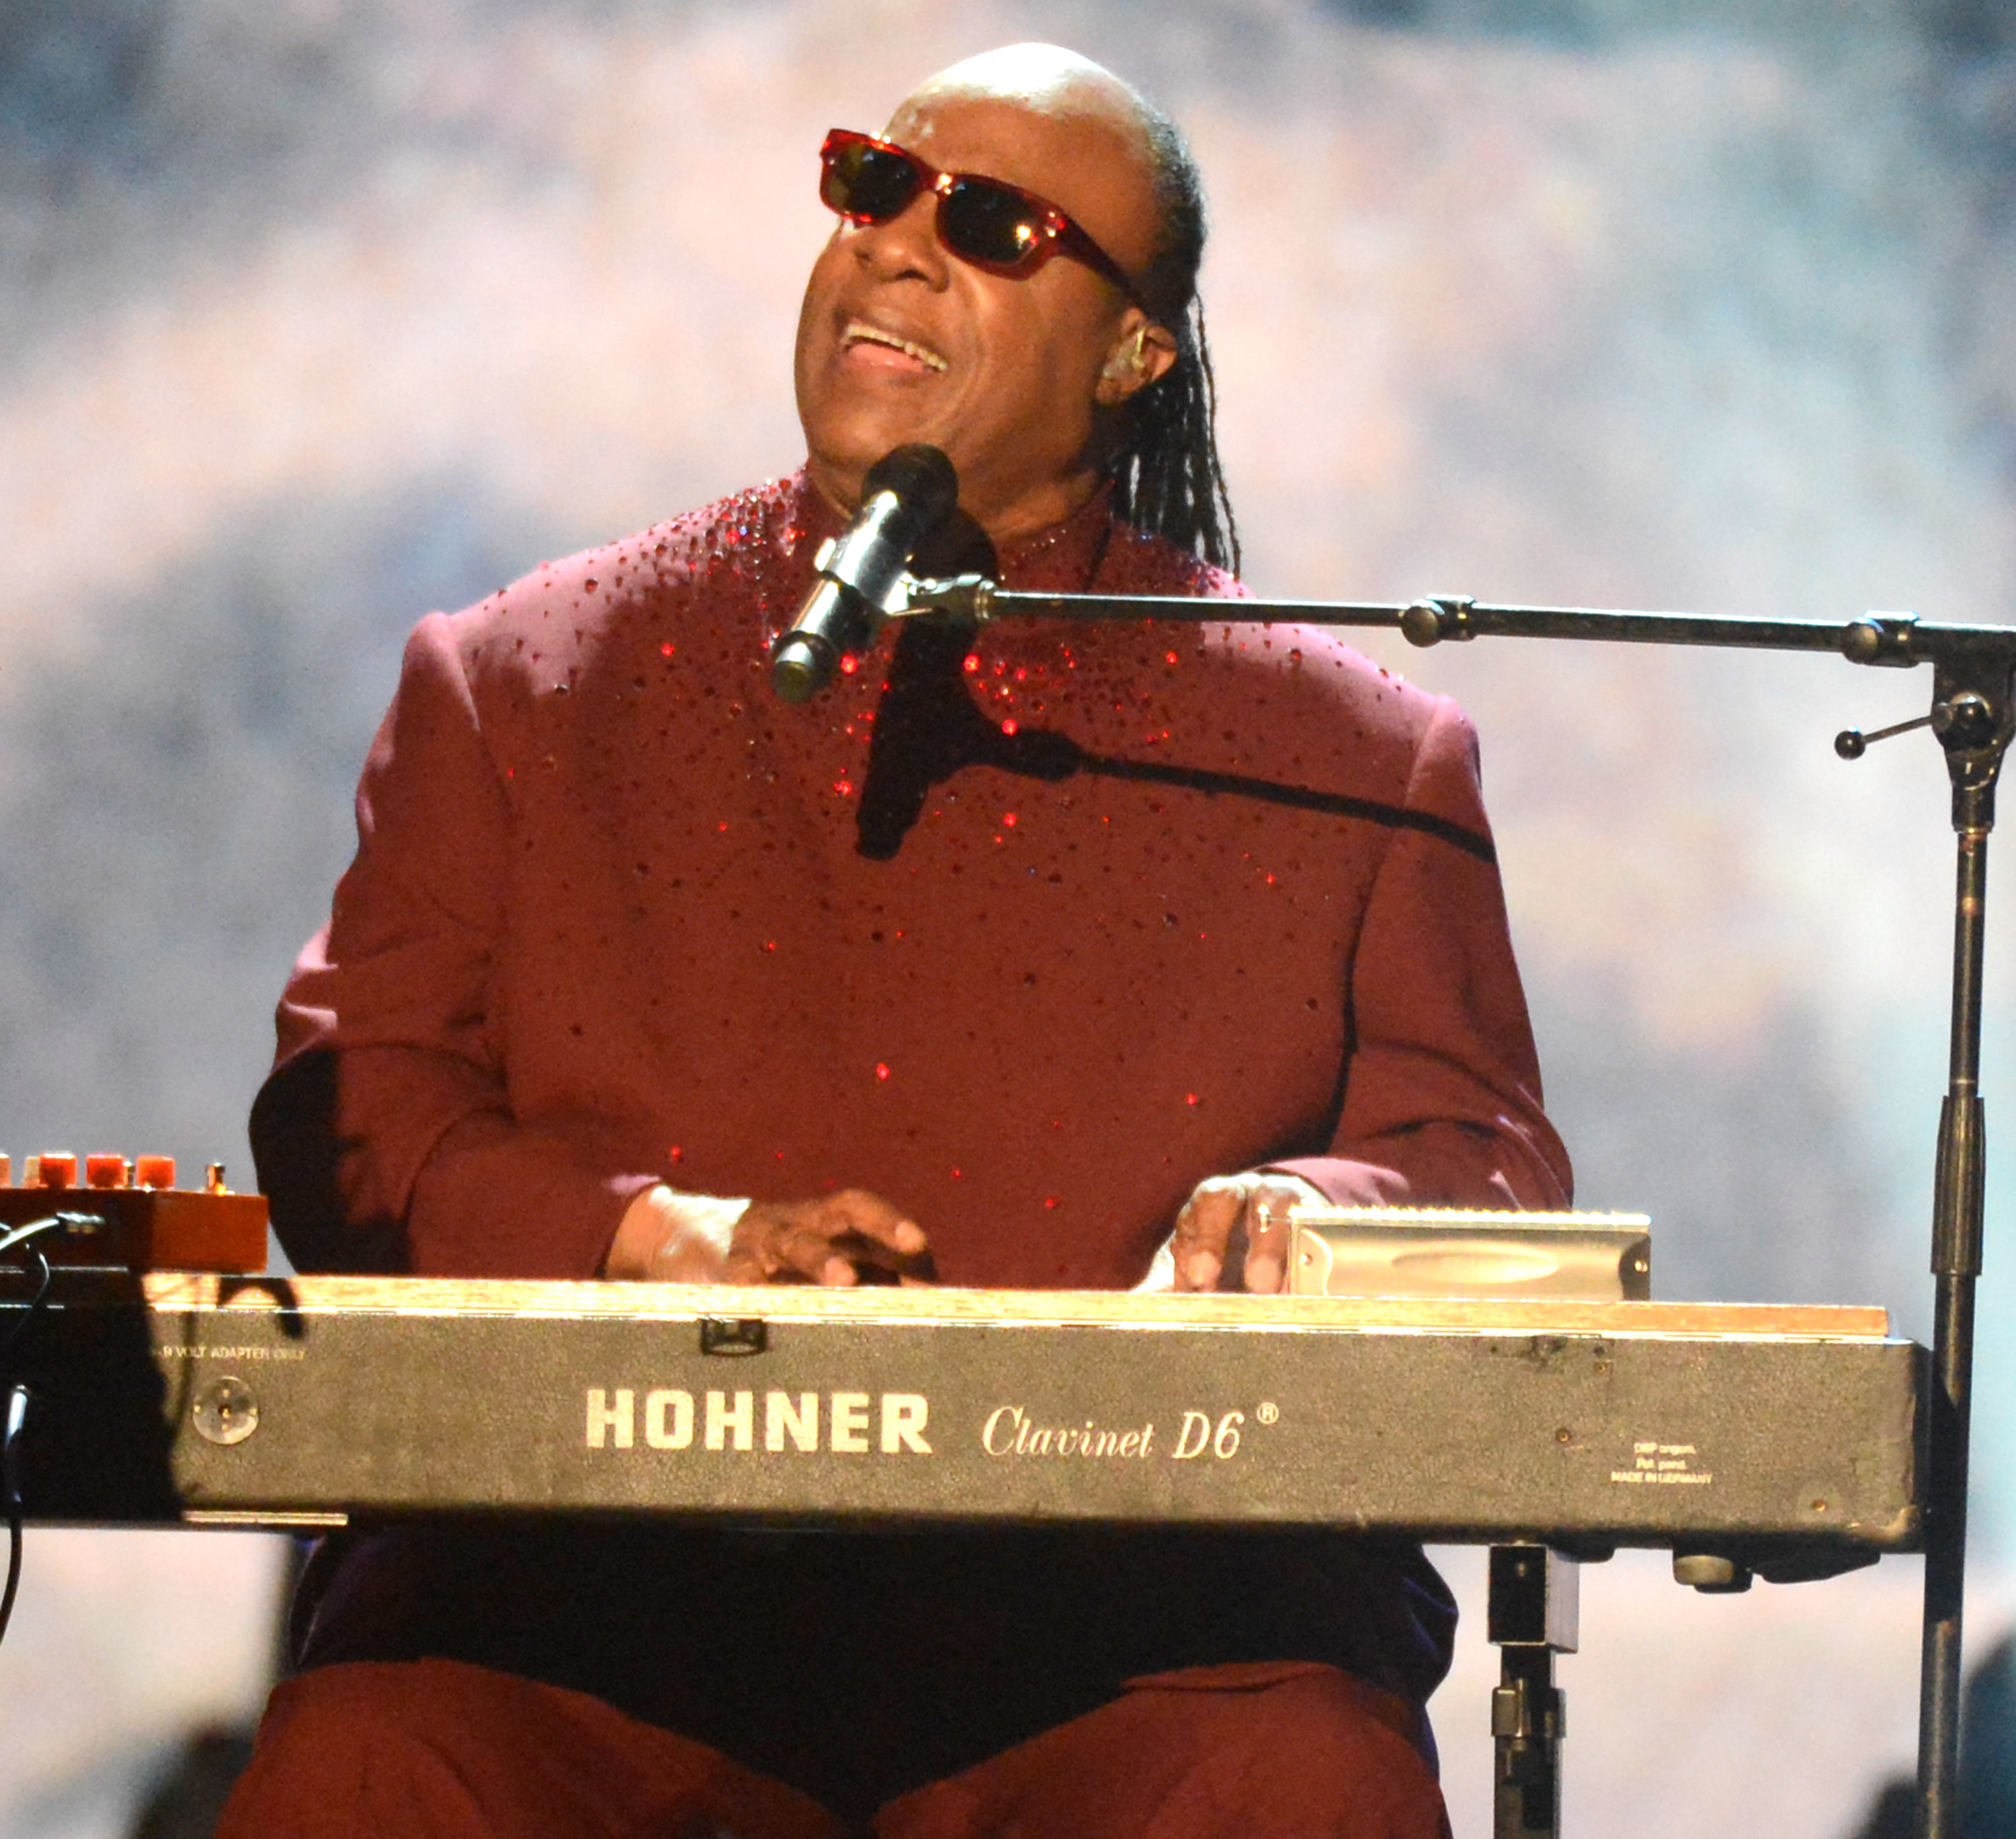 If you want to master Jazz Piano, you can log on and learn how to play like Stevie Wonder